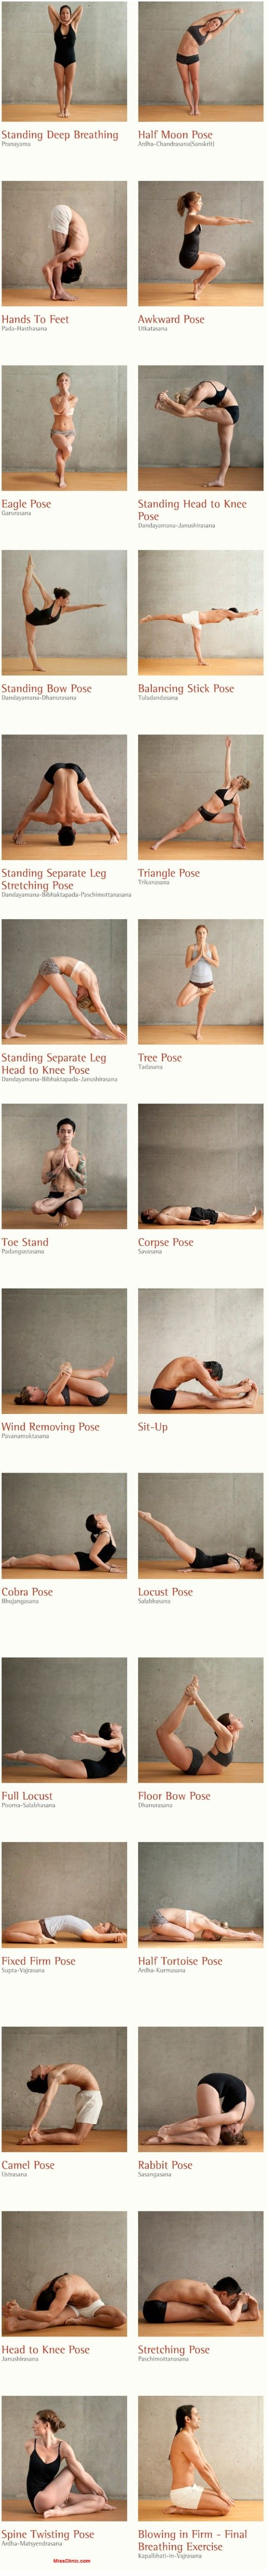 26 Healthy Yoga Postures. Looks like the hot yoga sequence